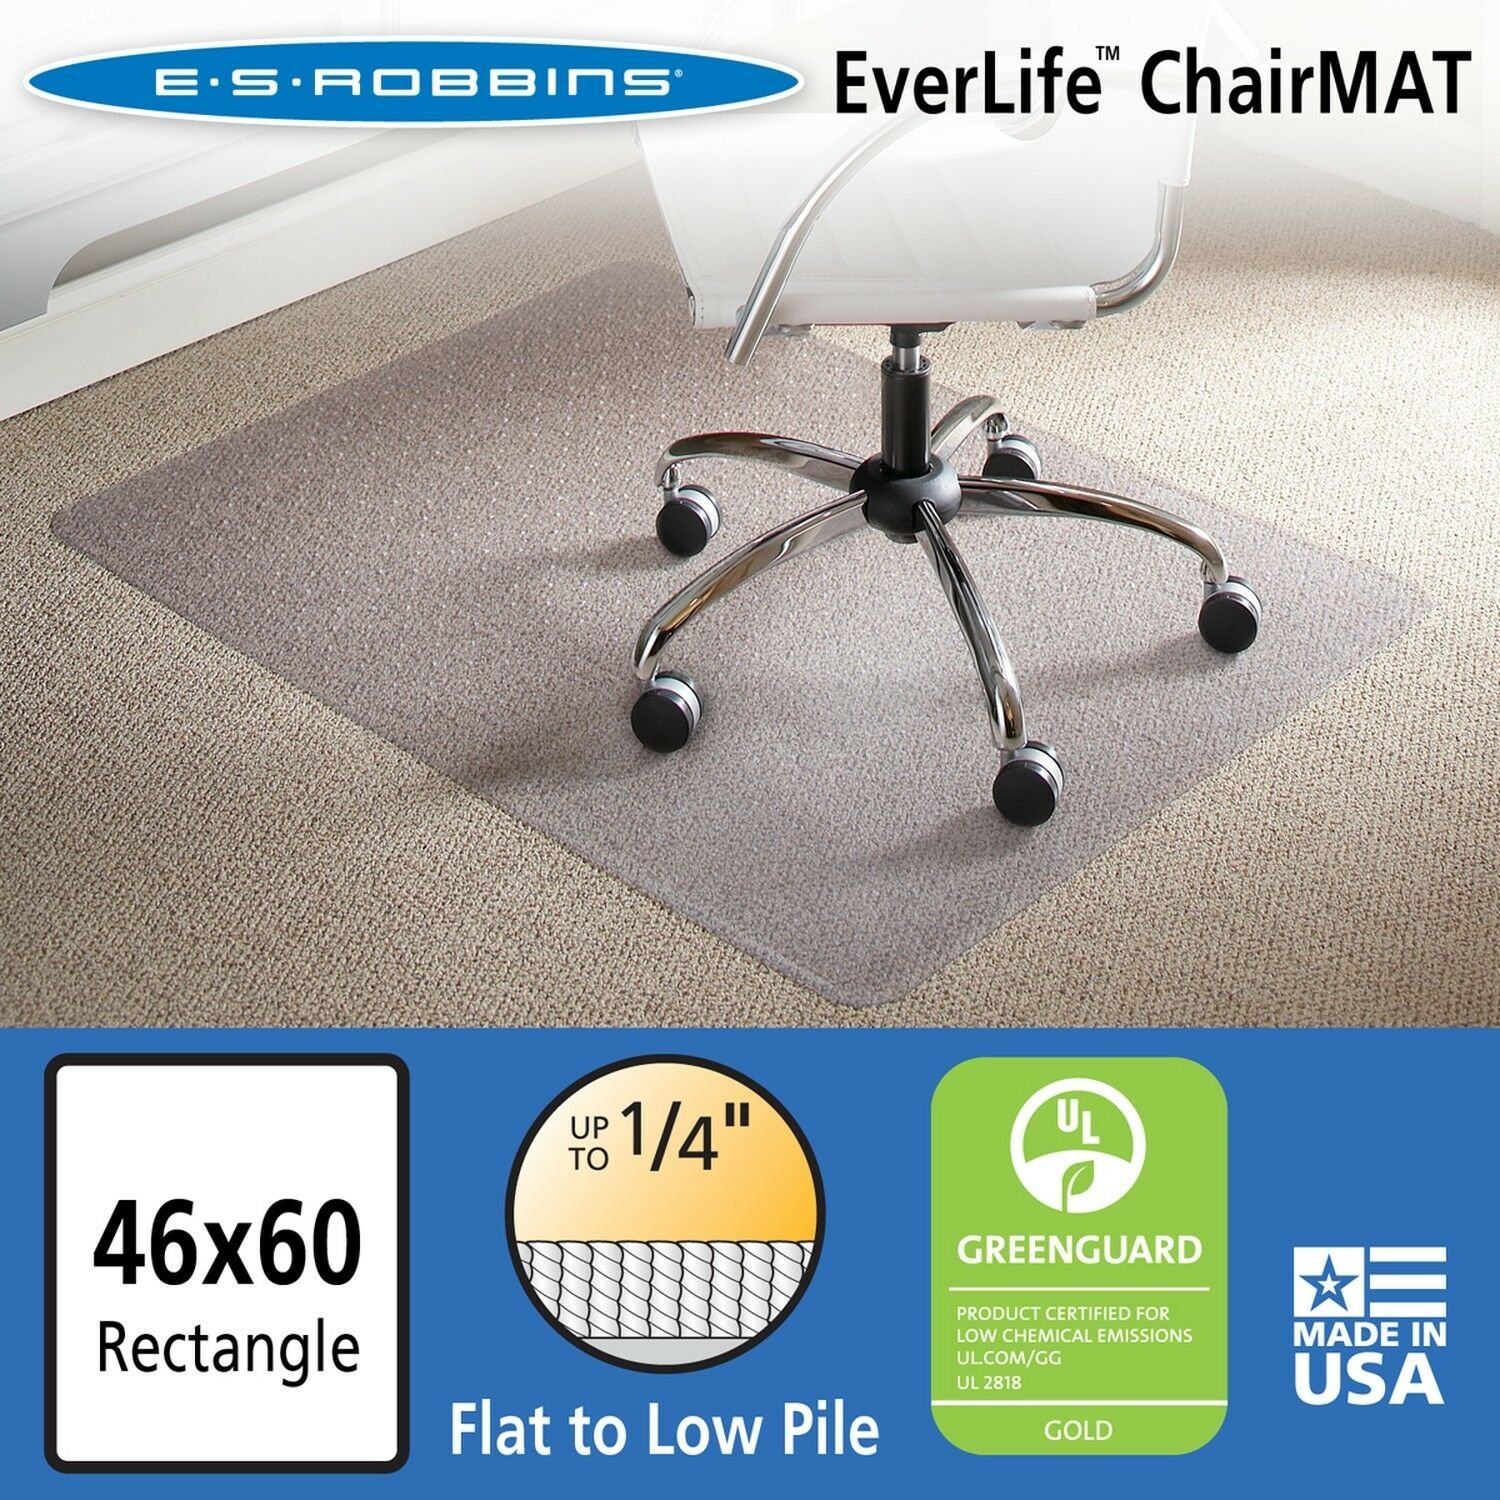 conference chair robbins design lift hard mat floor mats hr home stair es room x